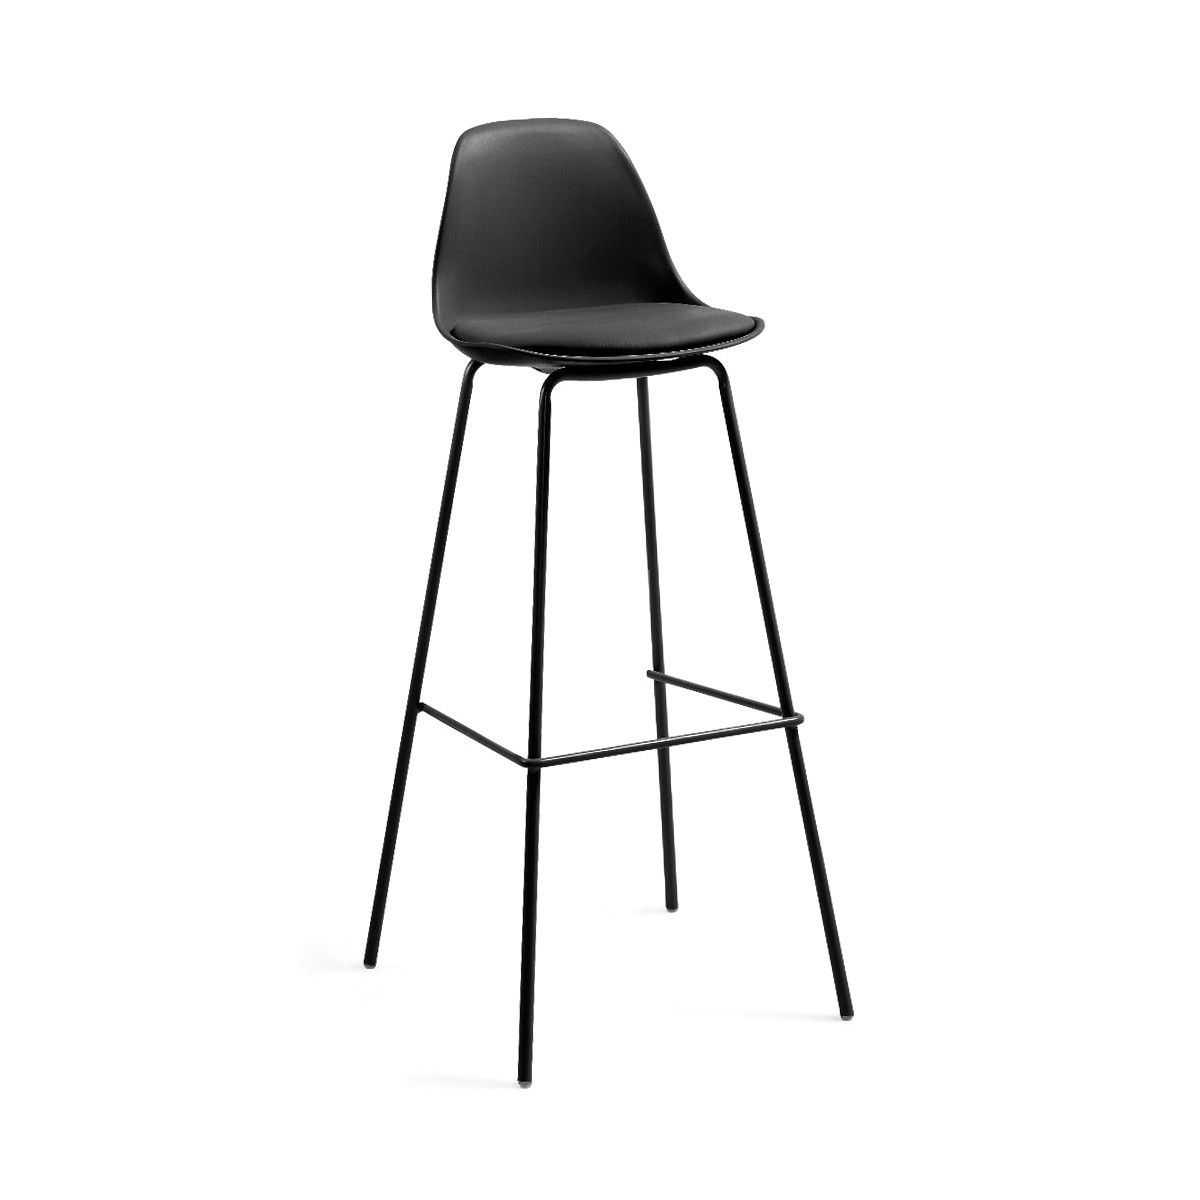 Chaves PU Leather Counter Stool, Black